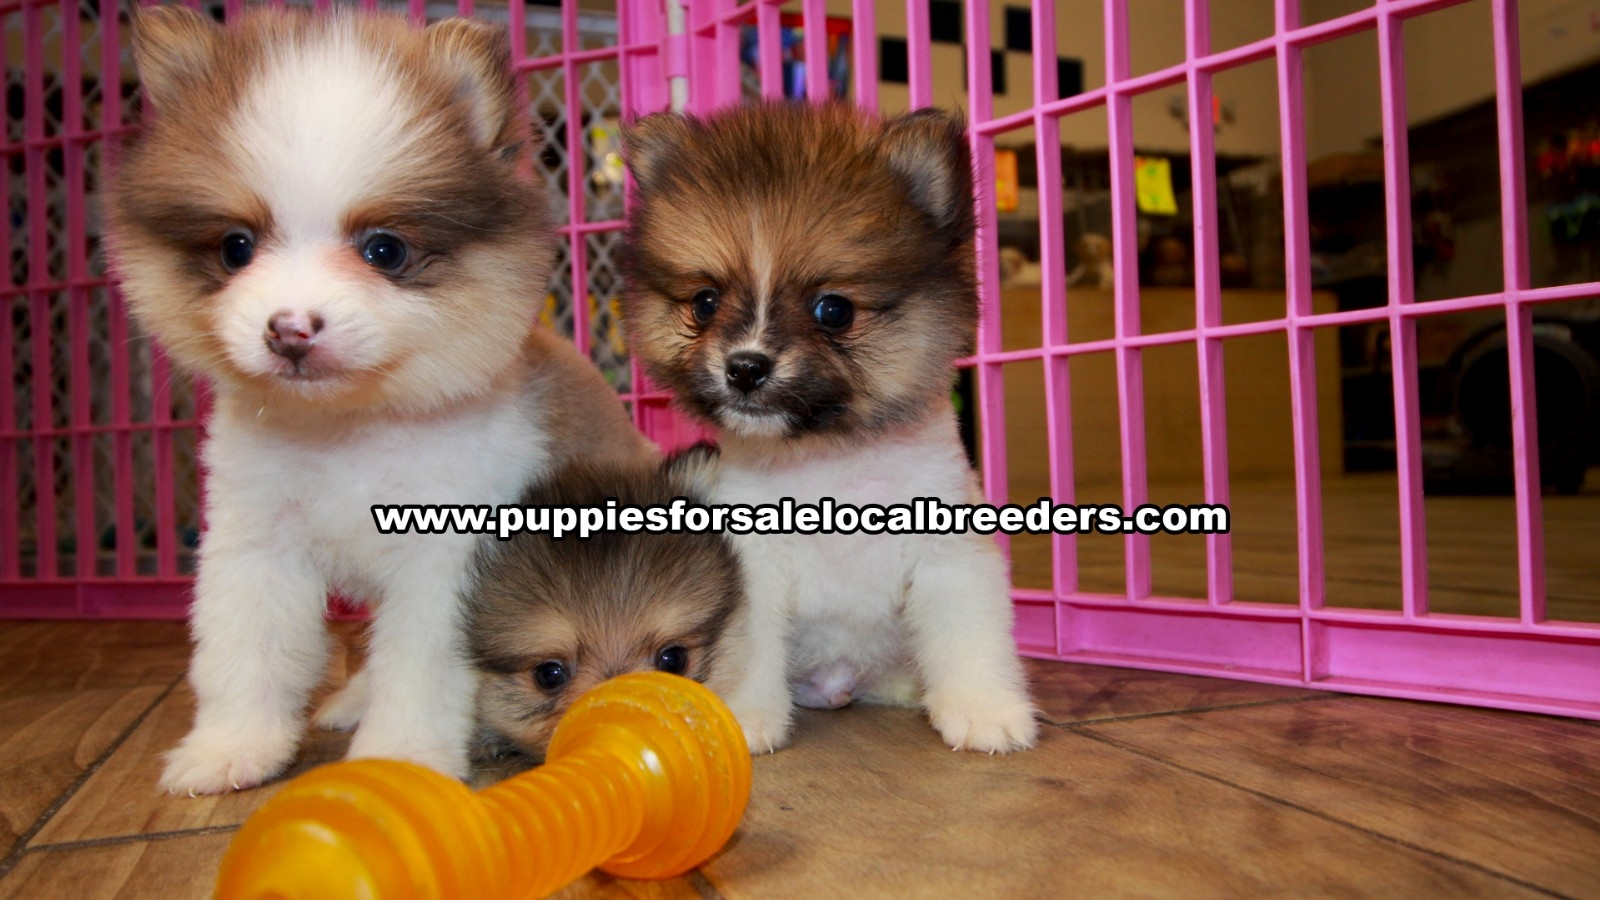 Small Pomeranian, Puppies For Sale In Georgia, Local Breeders, Near Atlanta, Ga